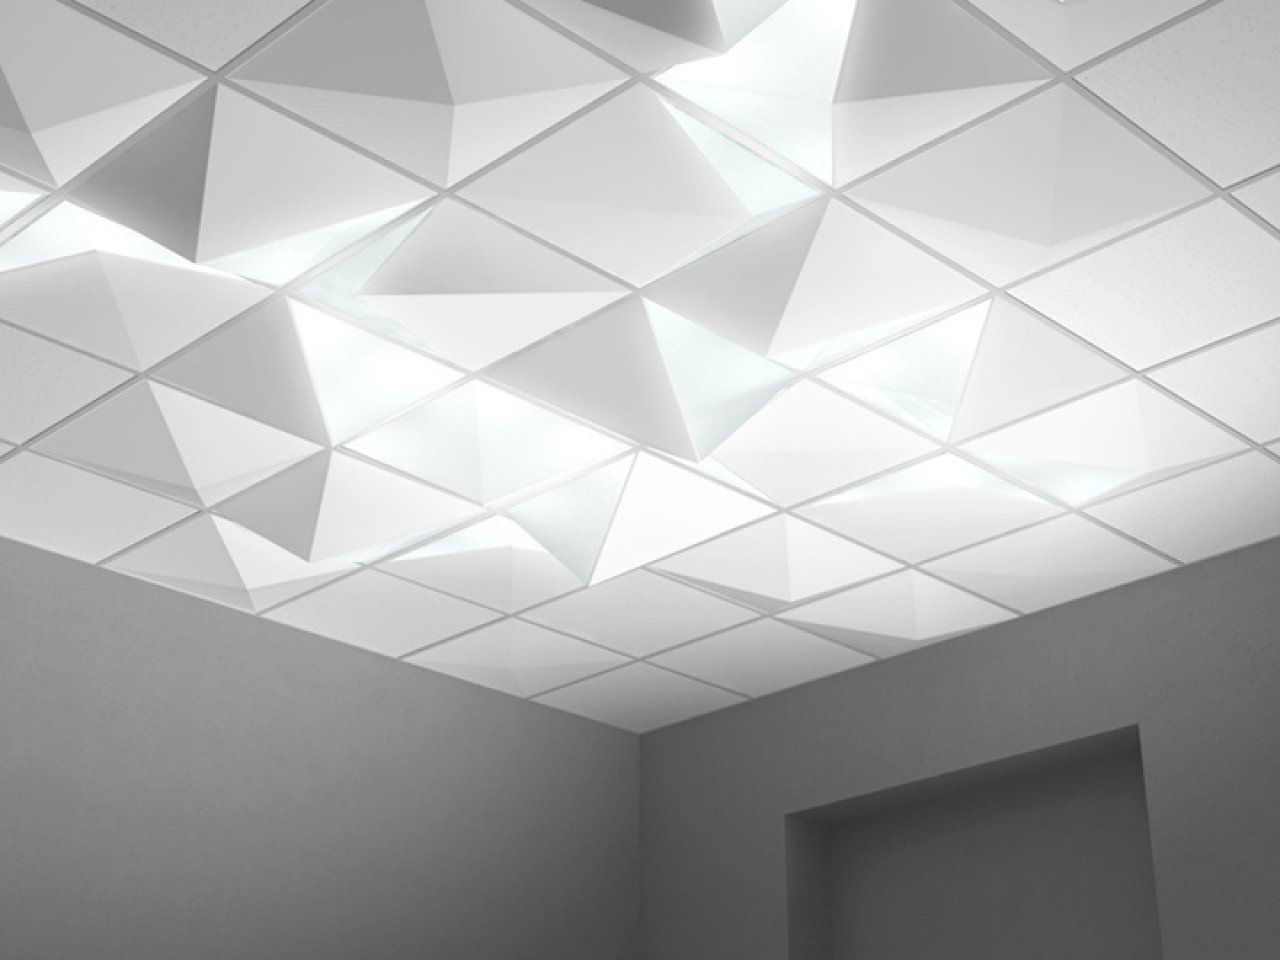 Image Result For 2x2 Tile With Recessed Linear Lighting Ceiling Lights Recessed Ceiling Lights Suspended Ceiling Lights